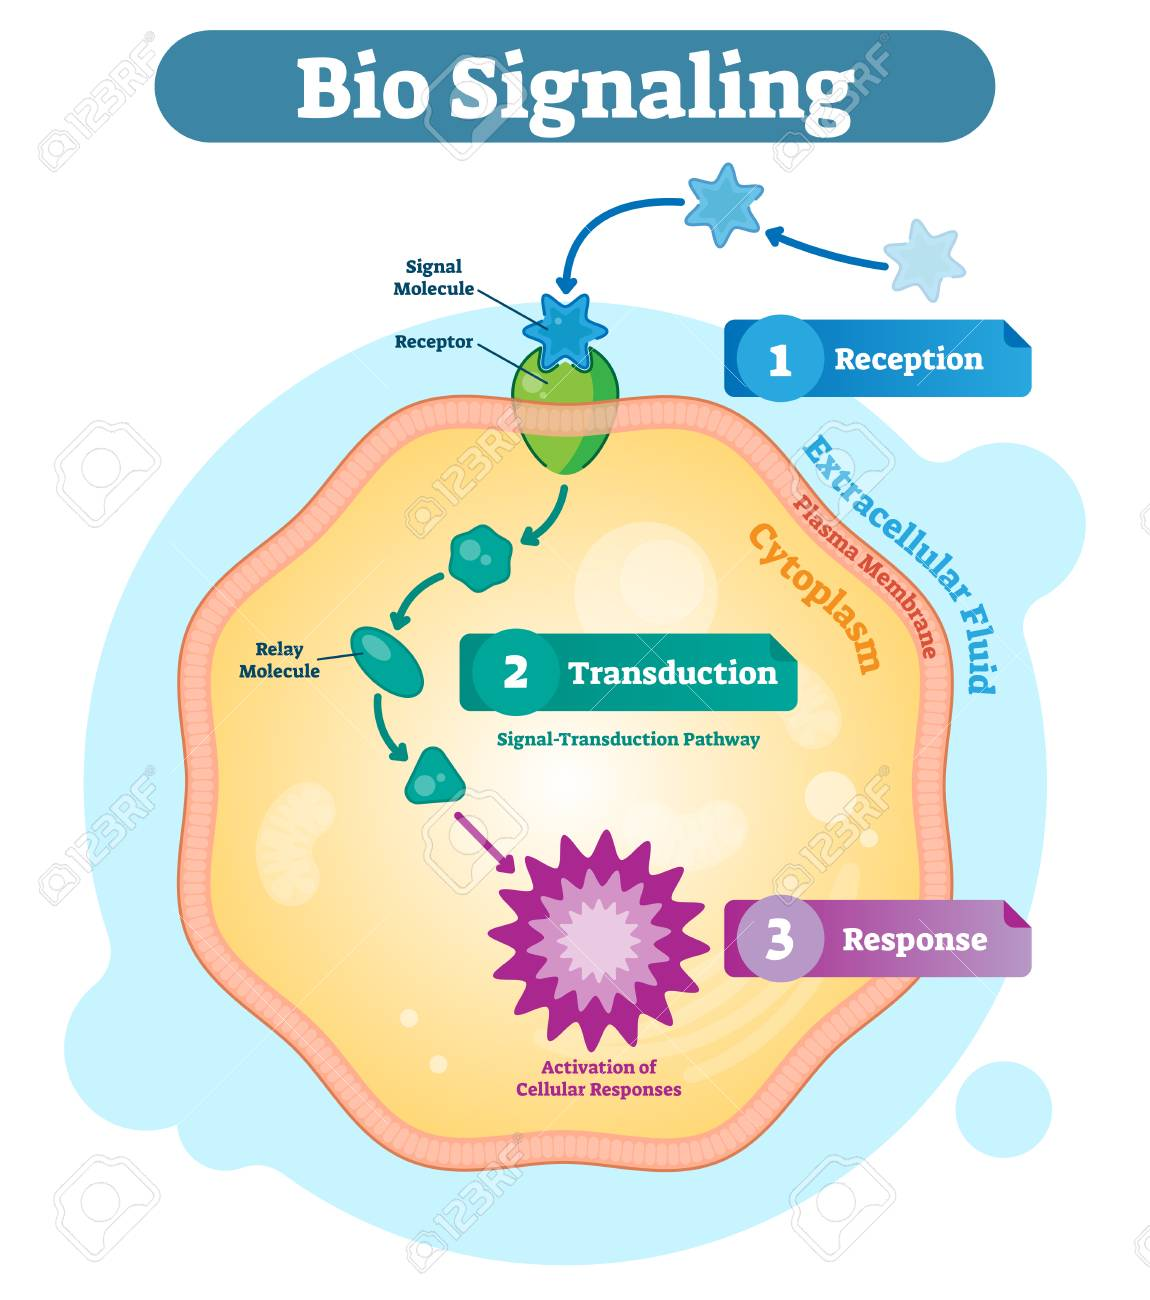 Bio signaling cell communication network system, micro biological anatomy labeled diagram vector illustration with receptor, transduction and response activity. Cell cross section scheme. - 103166995